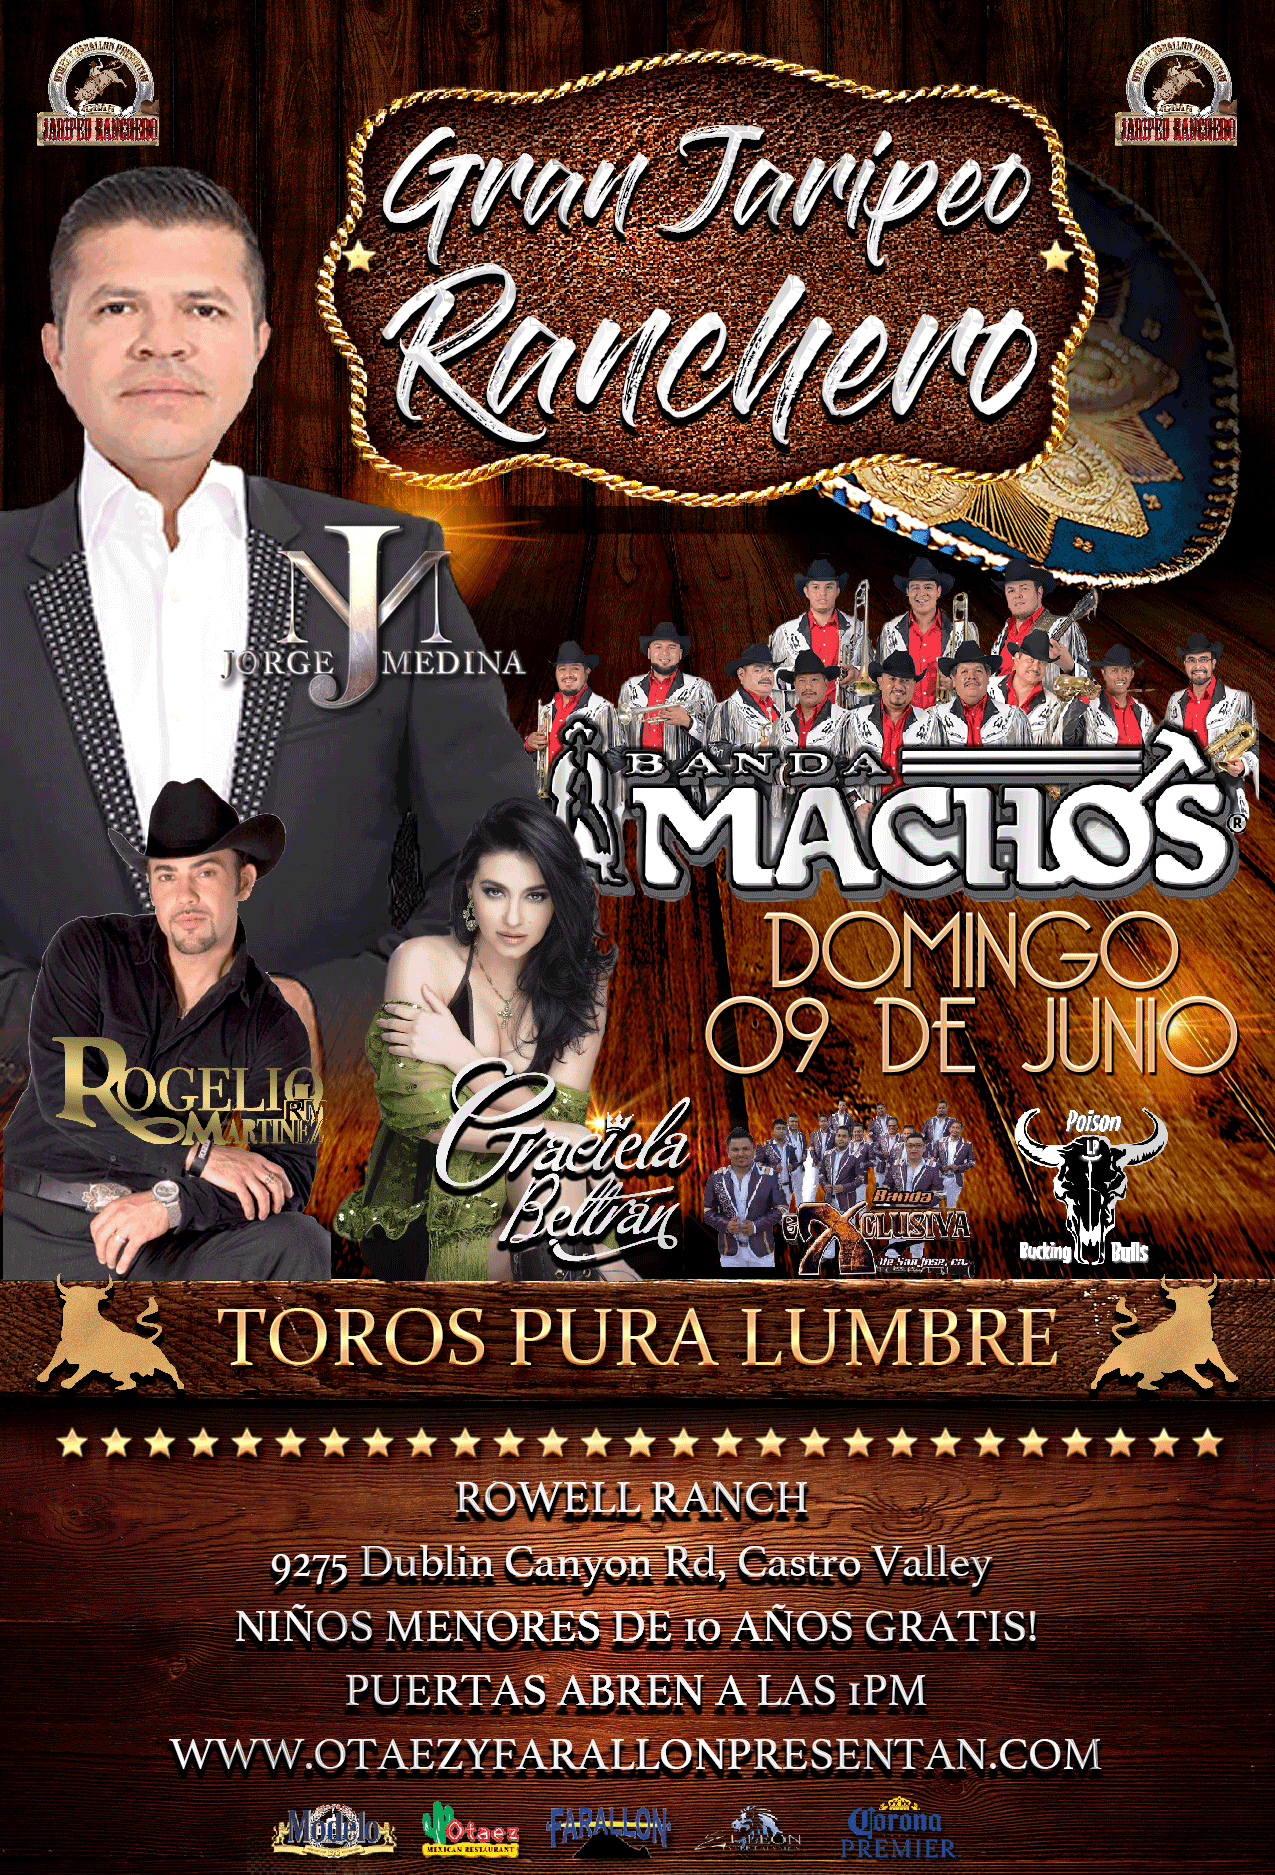 Gran Jaripeo Ranchero | Domingo 09 De Junio Jorge Medina|Banda Machos|Graciela Beltran|Rogelio Martinez on Jun 09, 13:00@Rowell Ranch - Buy tickets and Get information on otaezyfarallonpresentan otaezyfarallonpresentan